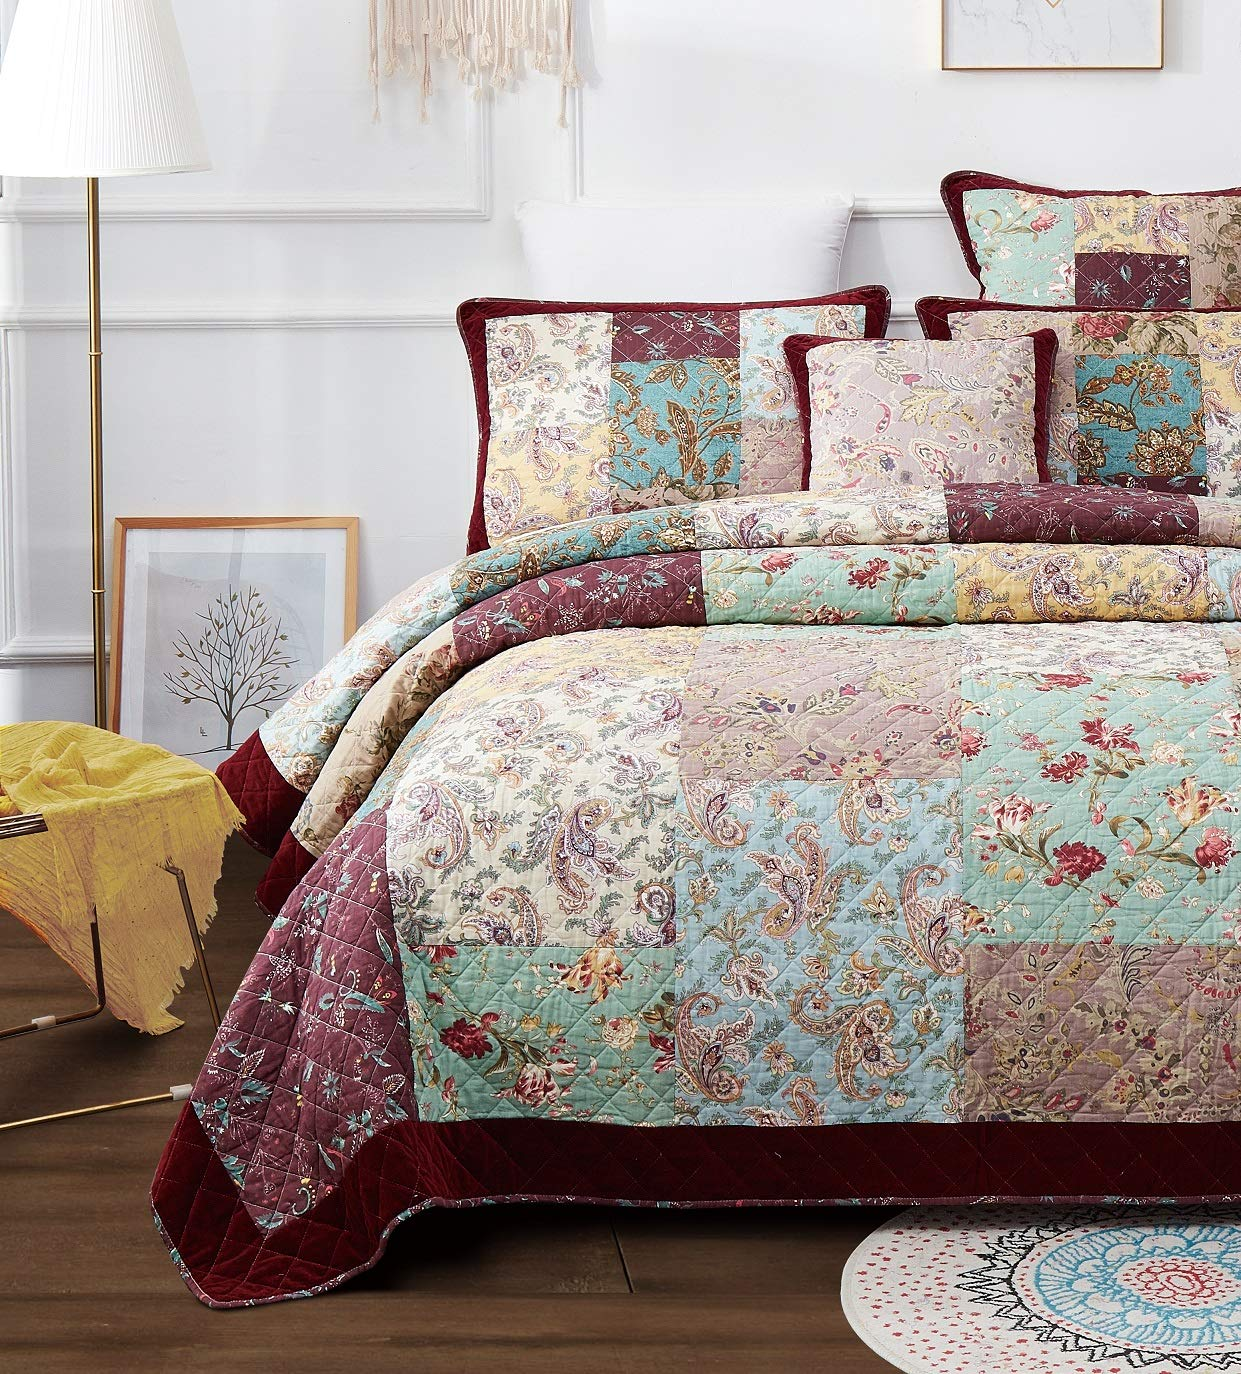 DaDa Bedding Bohemian Patchwork Bedspread - Burgundy Wine Velvety Trim - Vintage Floral Roses Paisley - Bright Vibrant Multi-Colorful Quilted Set - Queen - 3-Pieces by DaDa Bedding Collection